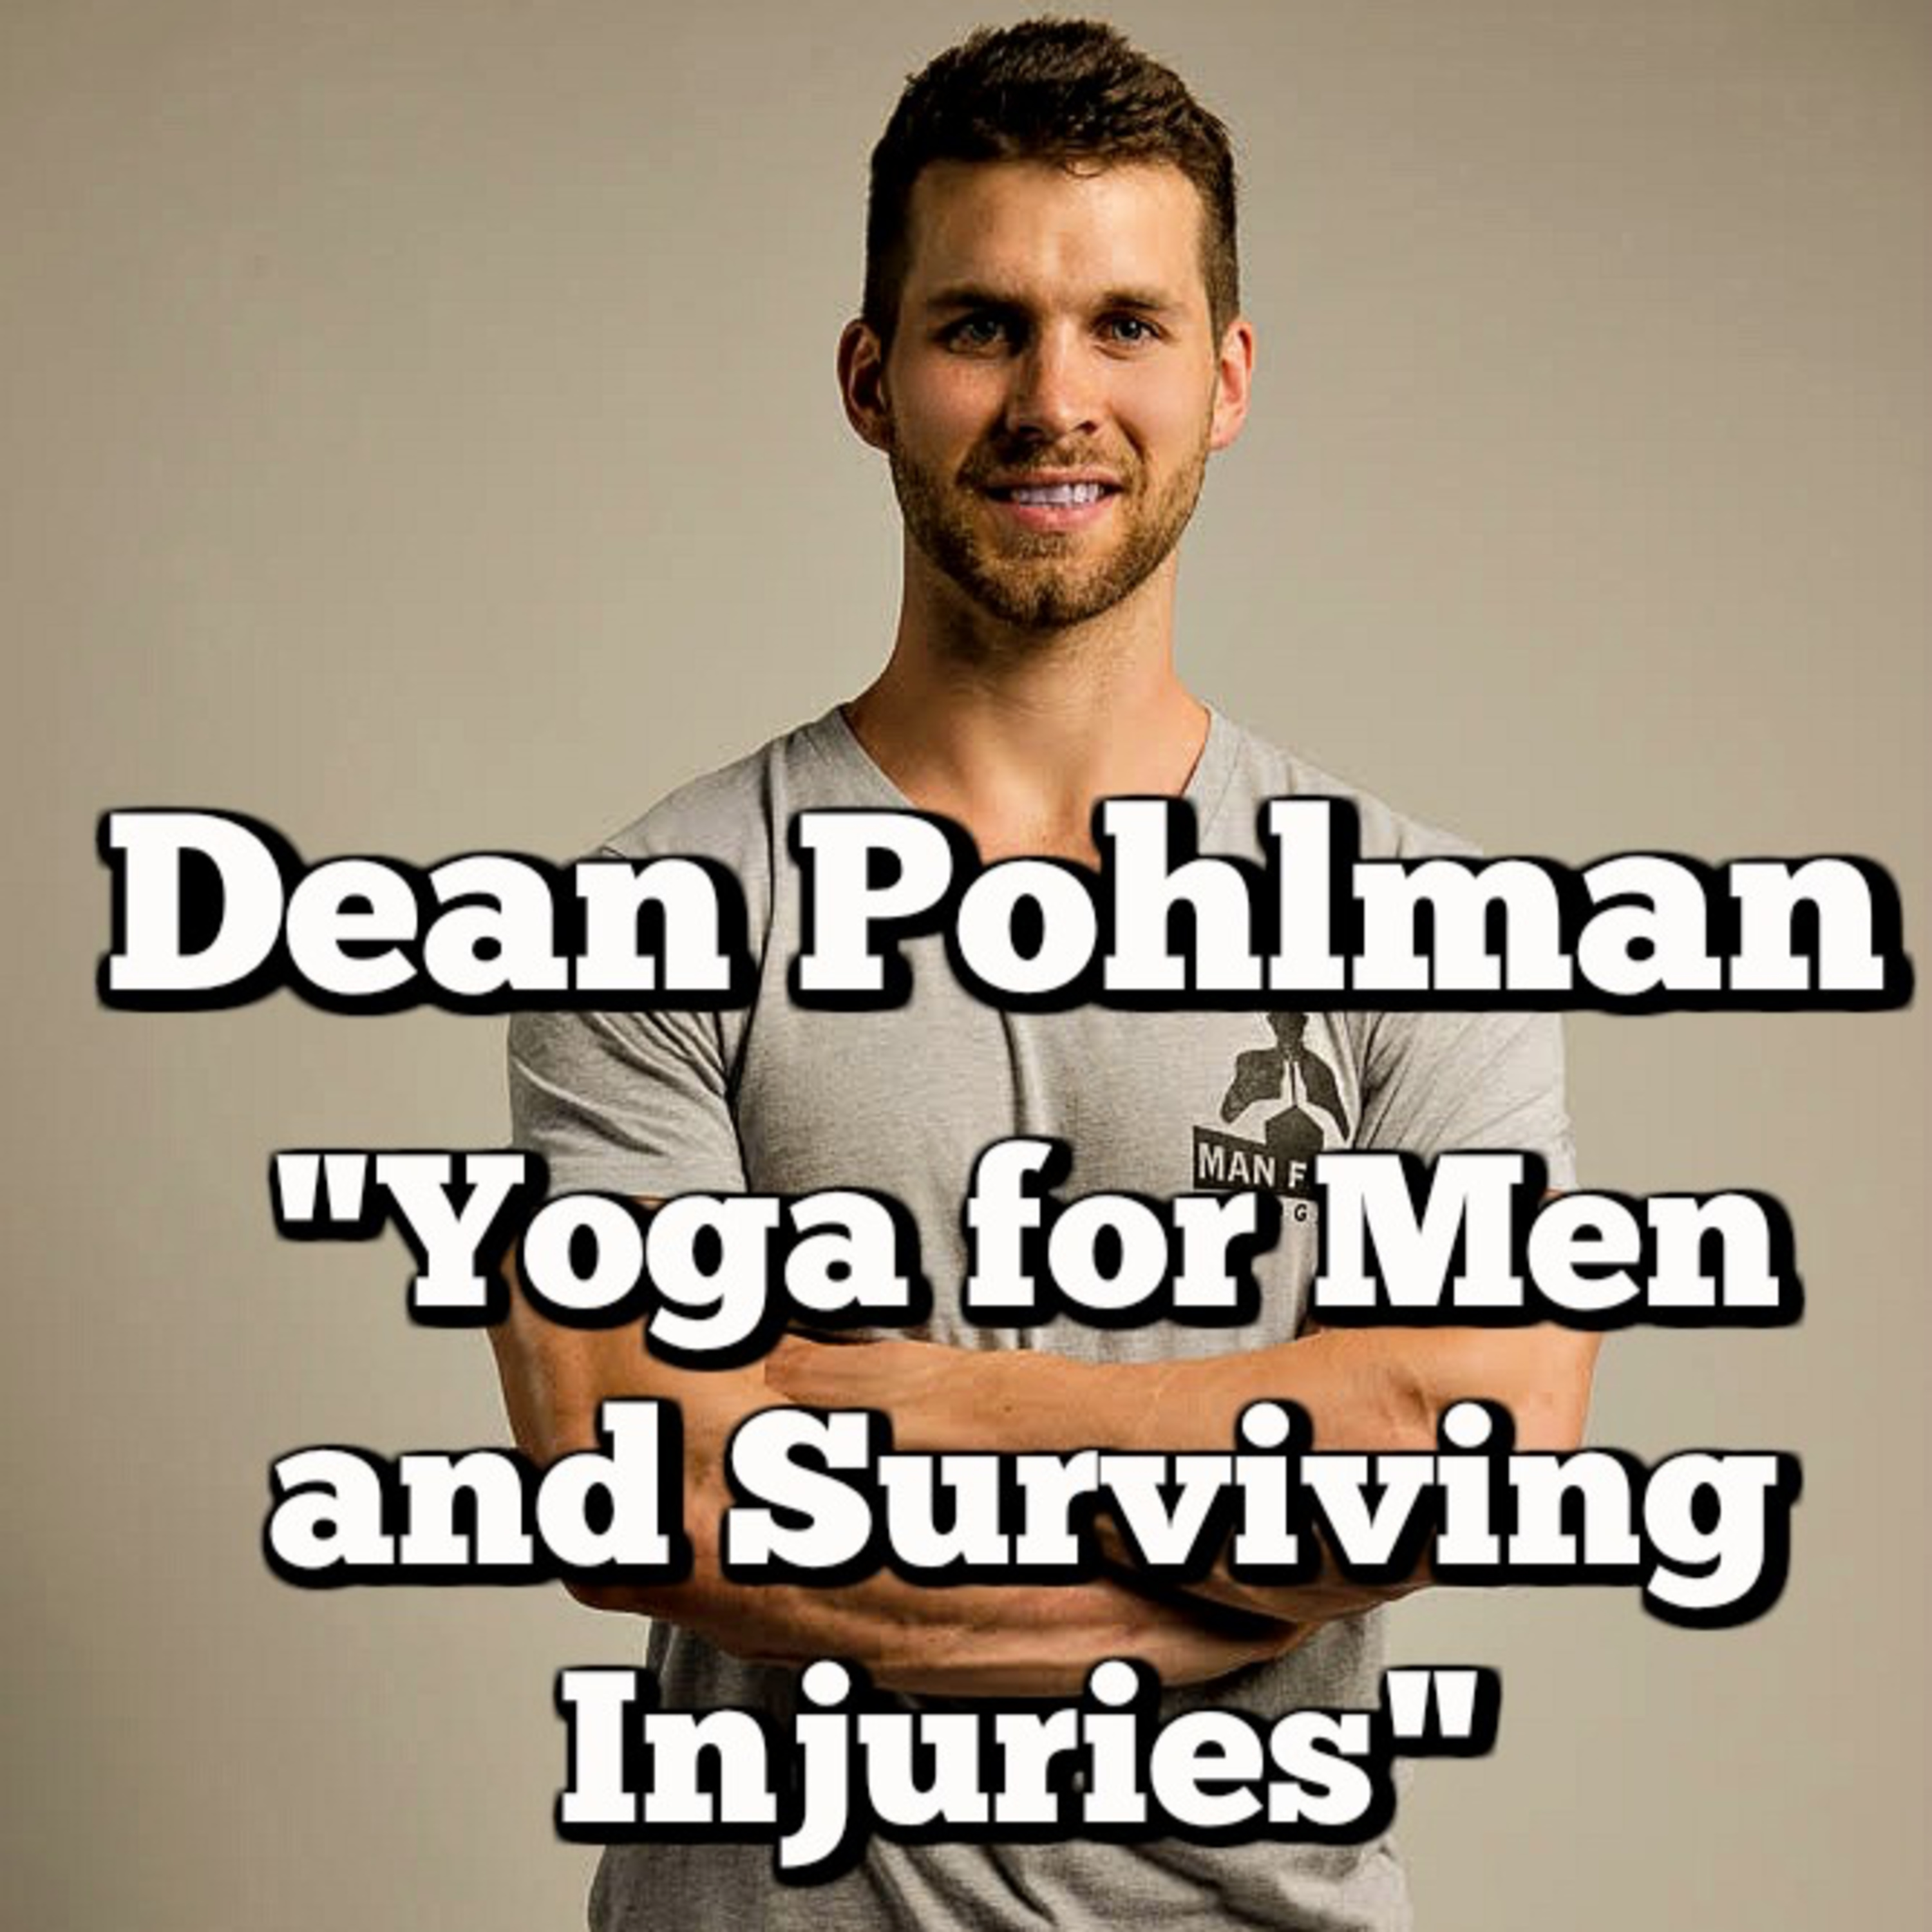 Dean Pohlman: Yoga Training for Men, Broken Glass and Surviving Injuries